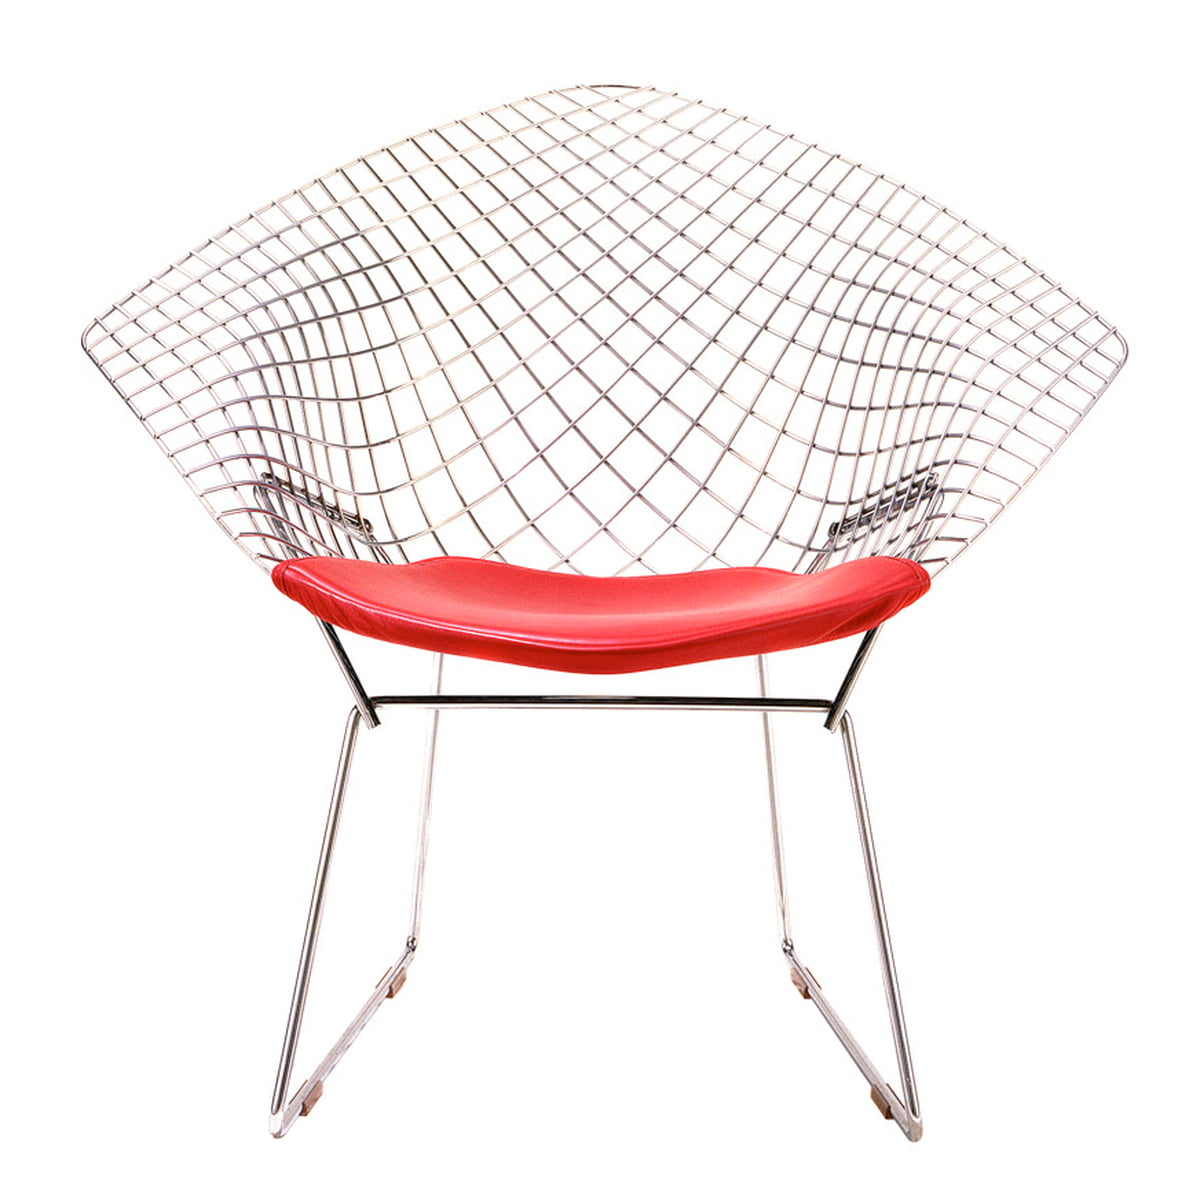 Bertoia diamond chair dimensions - Knoll Bertoia Diamond Lounger